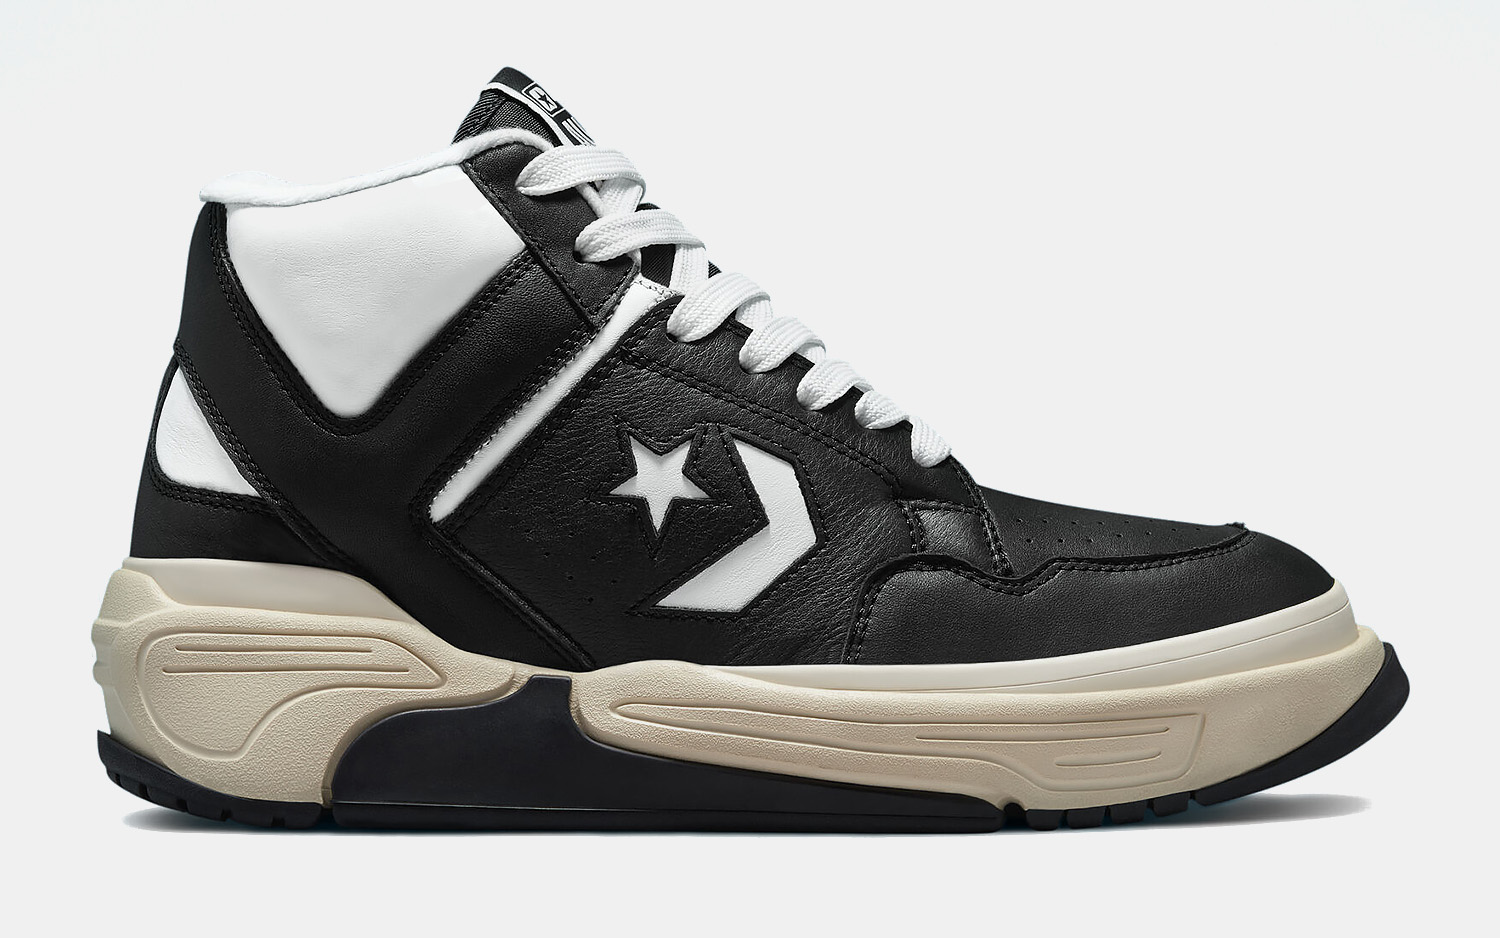 Converse Weapon CX Sneakers